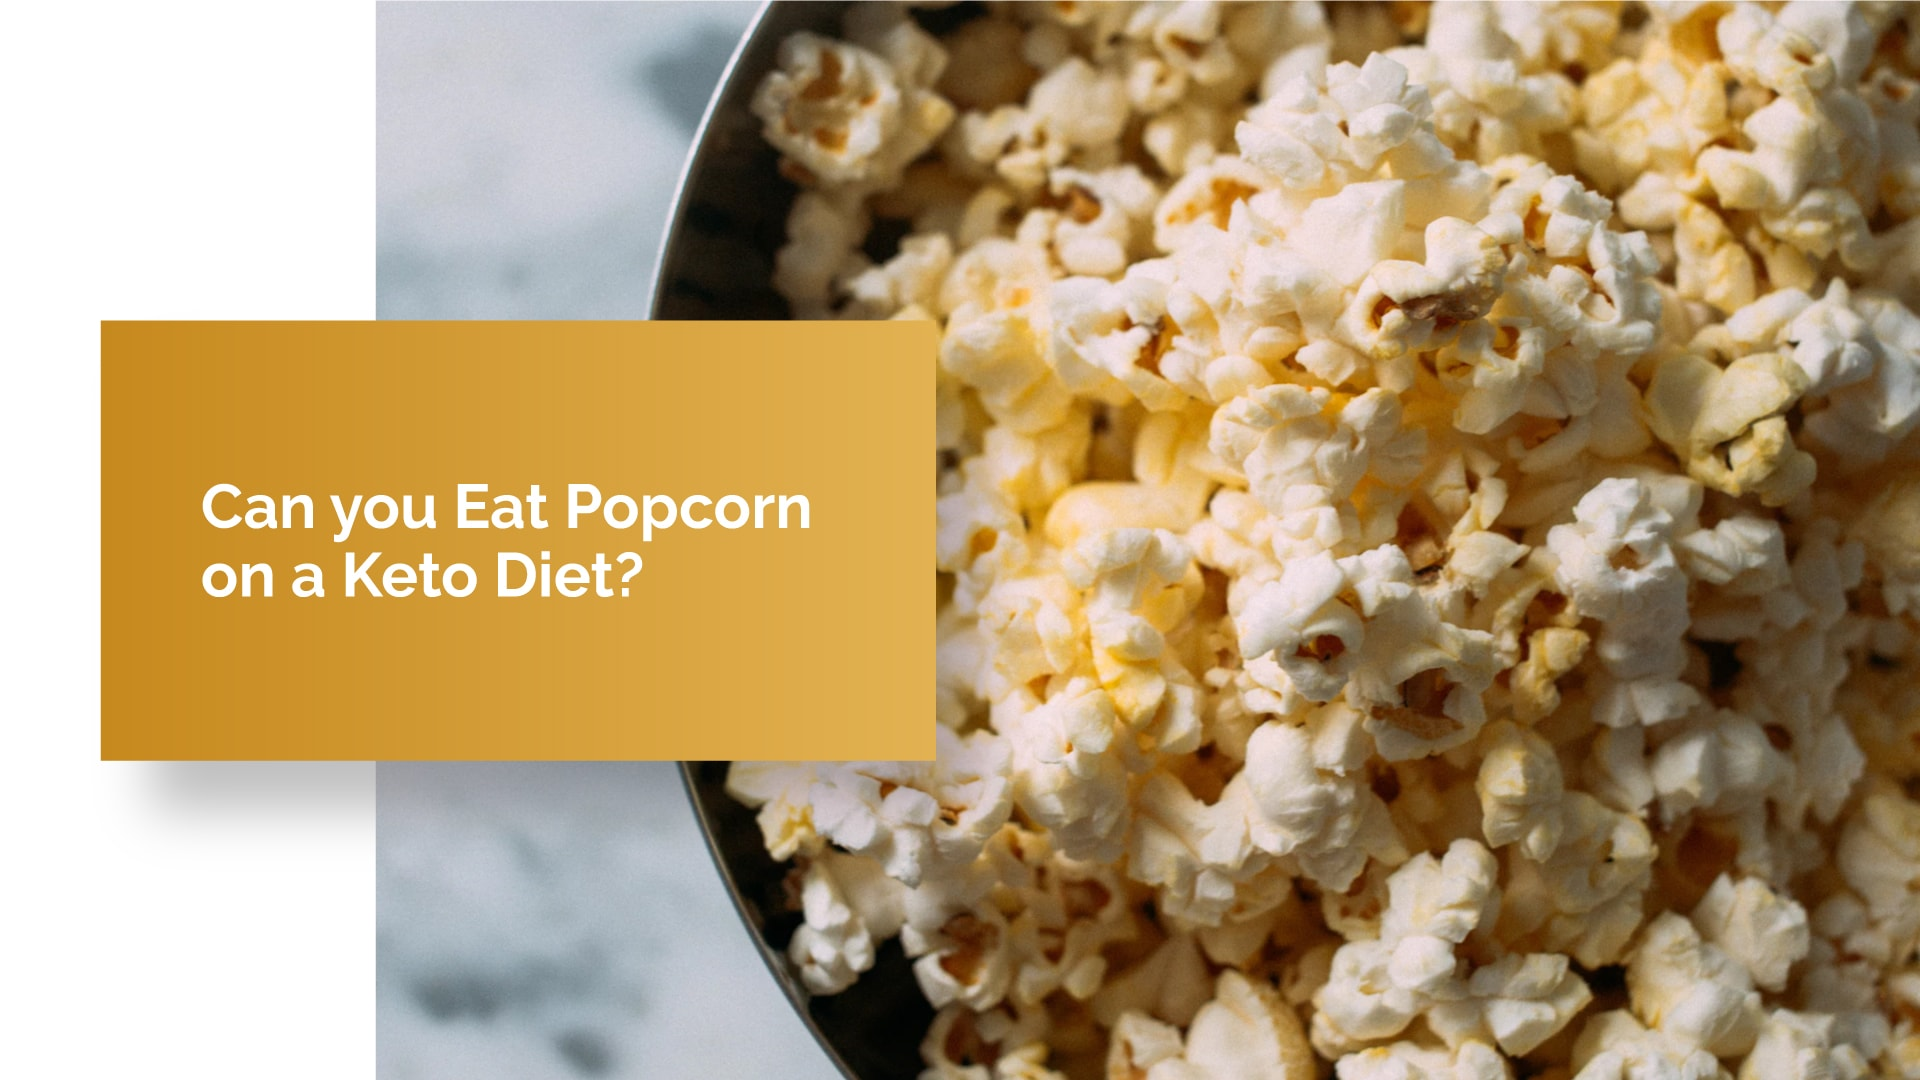 is popcorn allowed on a keto diet